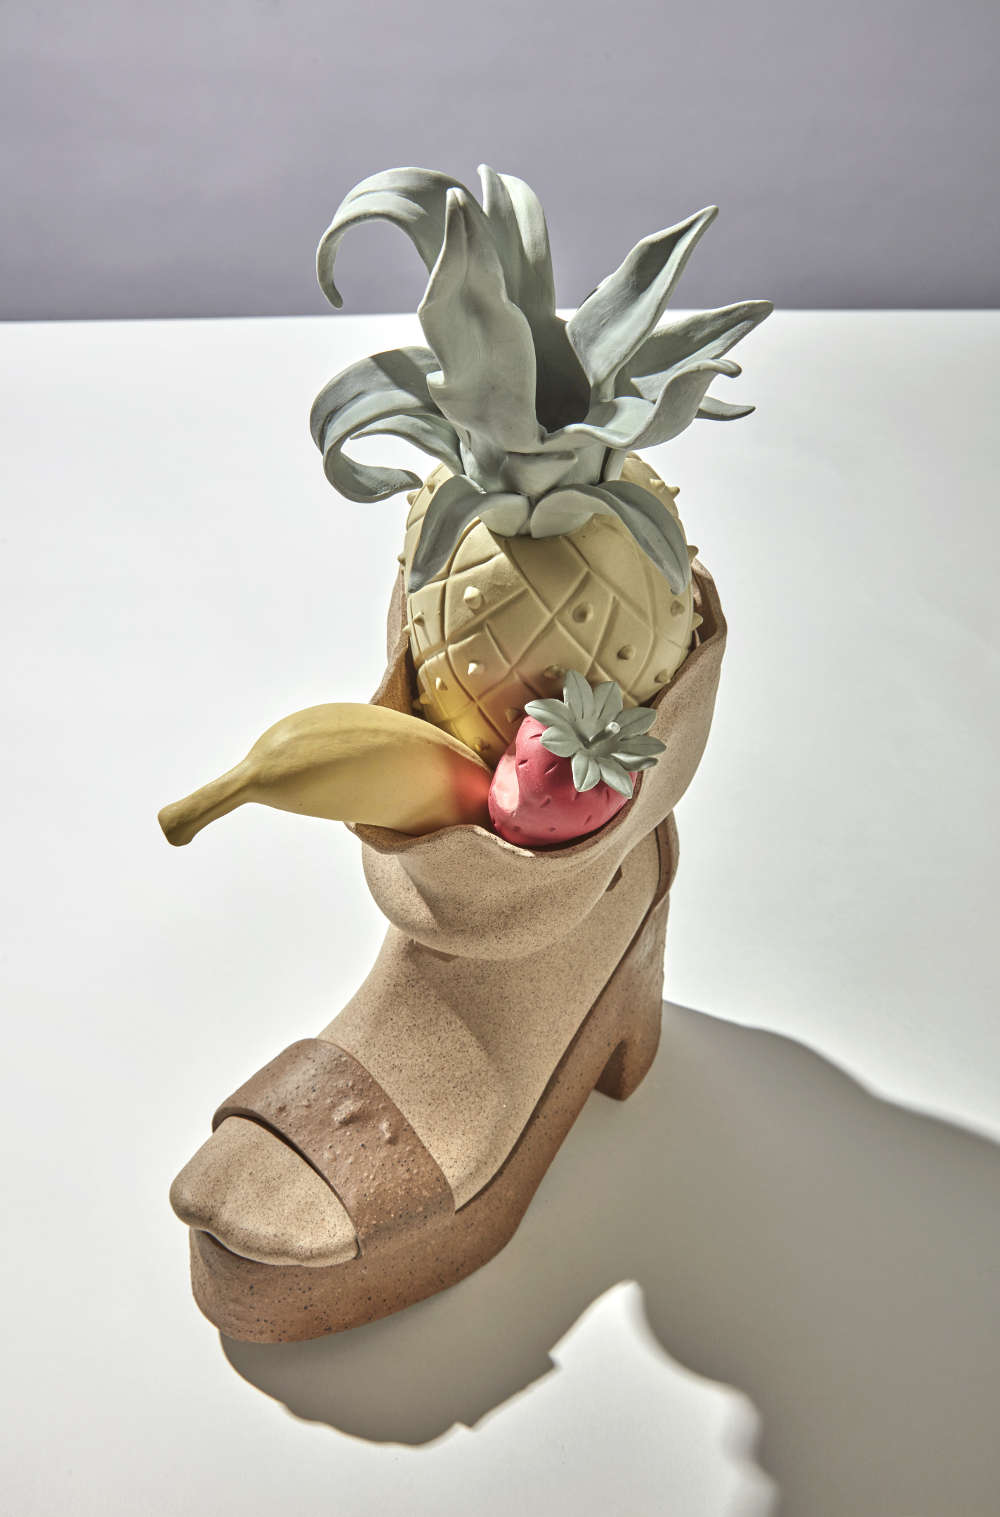 Genesis Belanger, Swollen, 2018. Stoneware, porcelain 45.7 x 27.9 x 14 cm, 18 x 11 x 5 1/2 in. Courtesy of the artist and Perrotin.